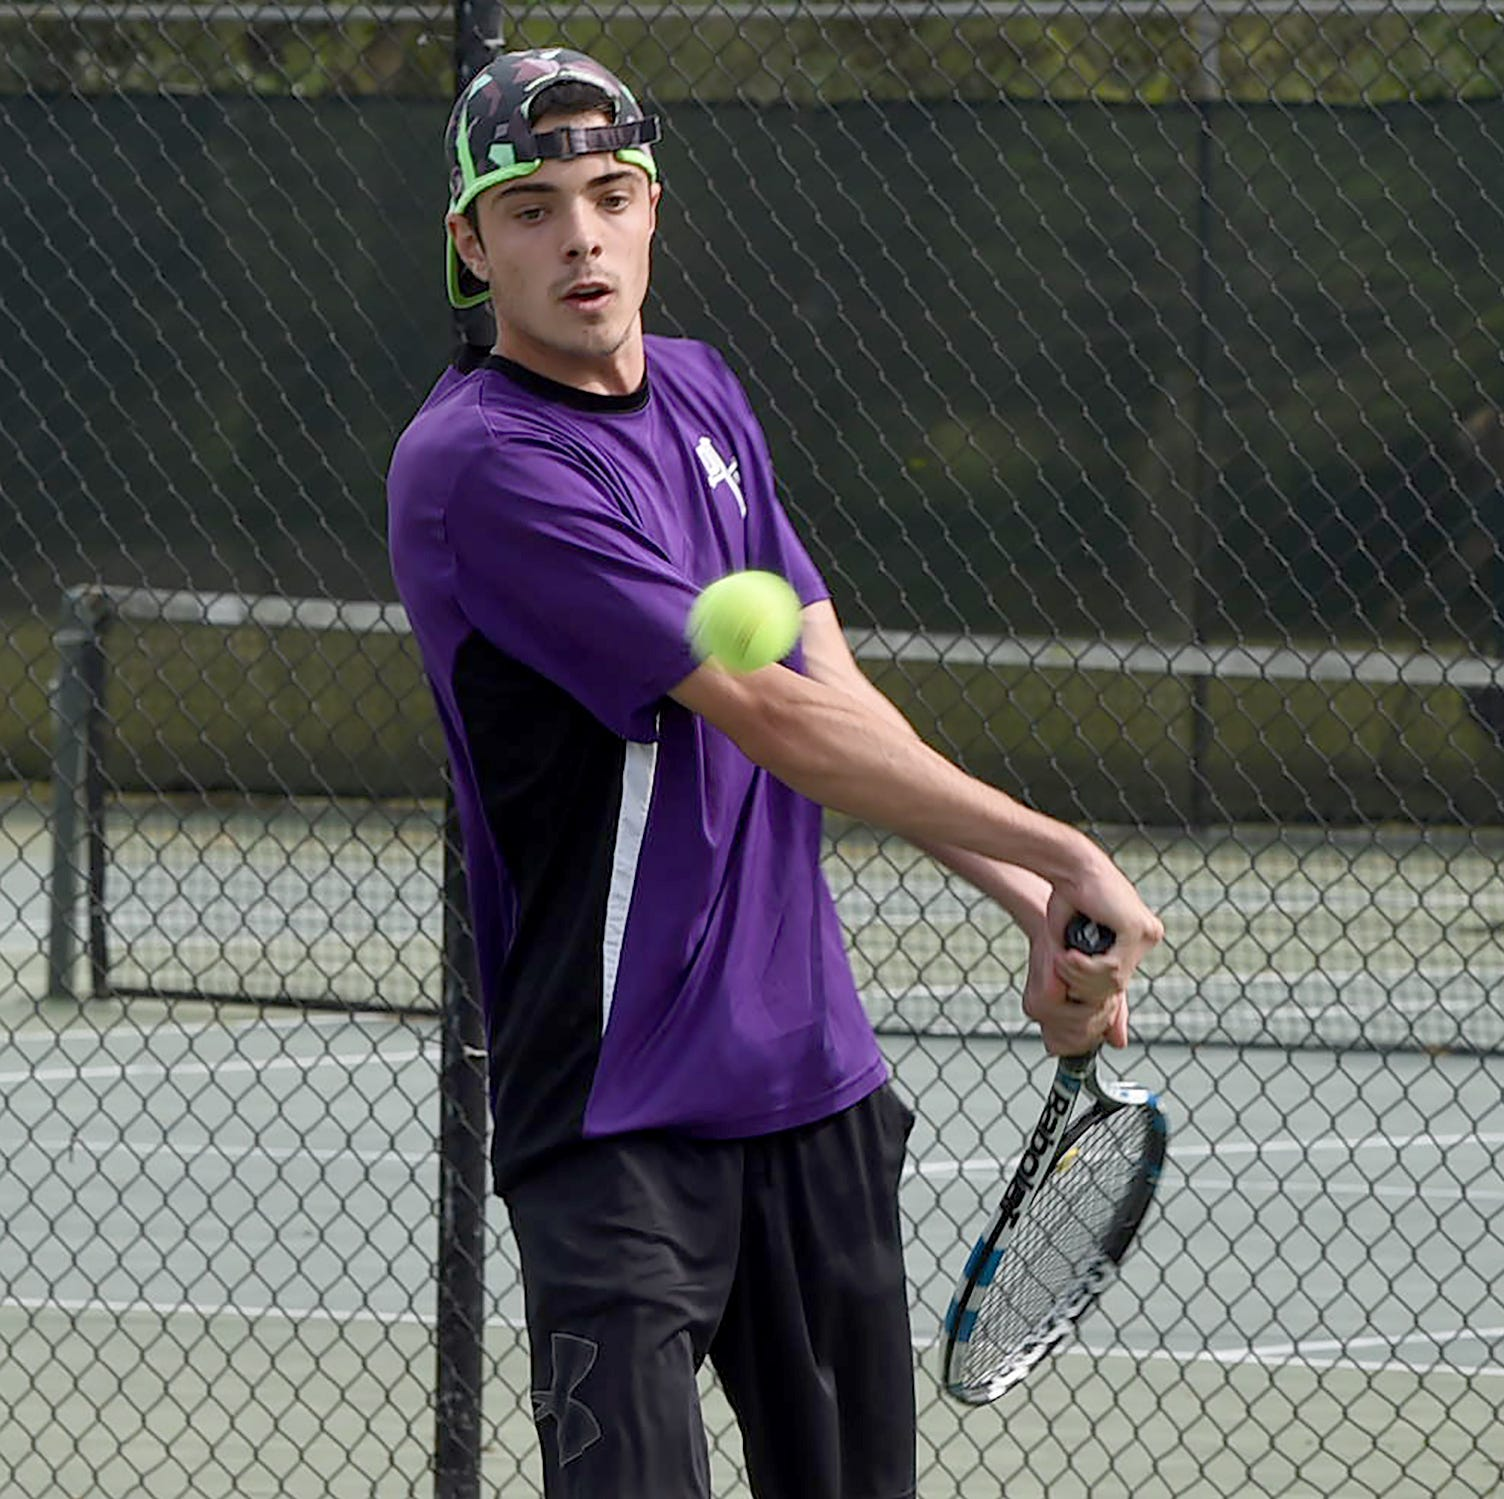 In sixth and final year of varsity tennis, OC's Thistlethwaite hopes to go all the way